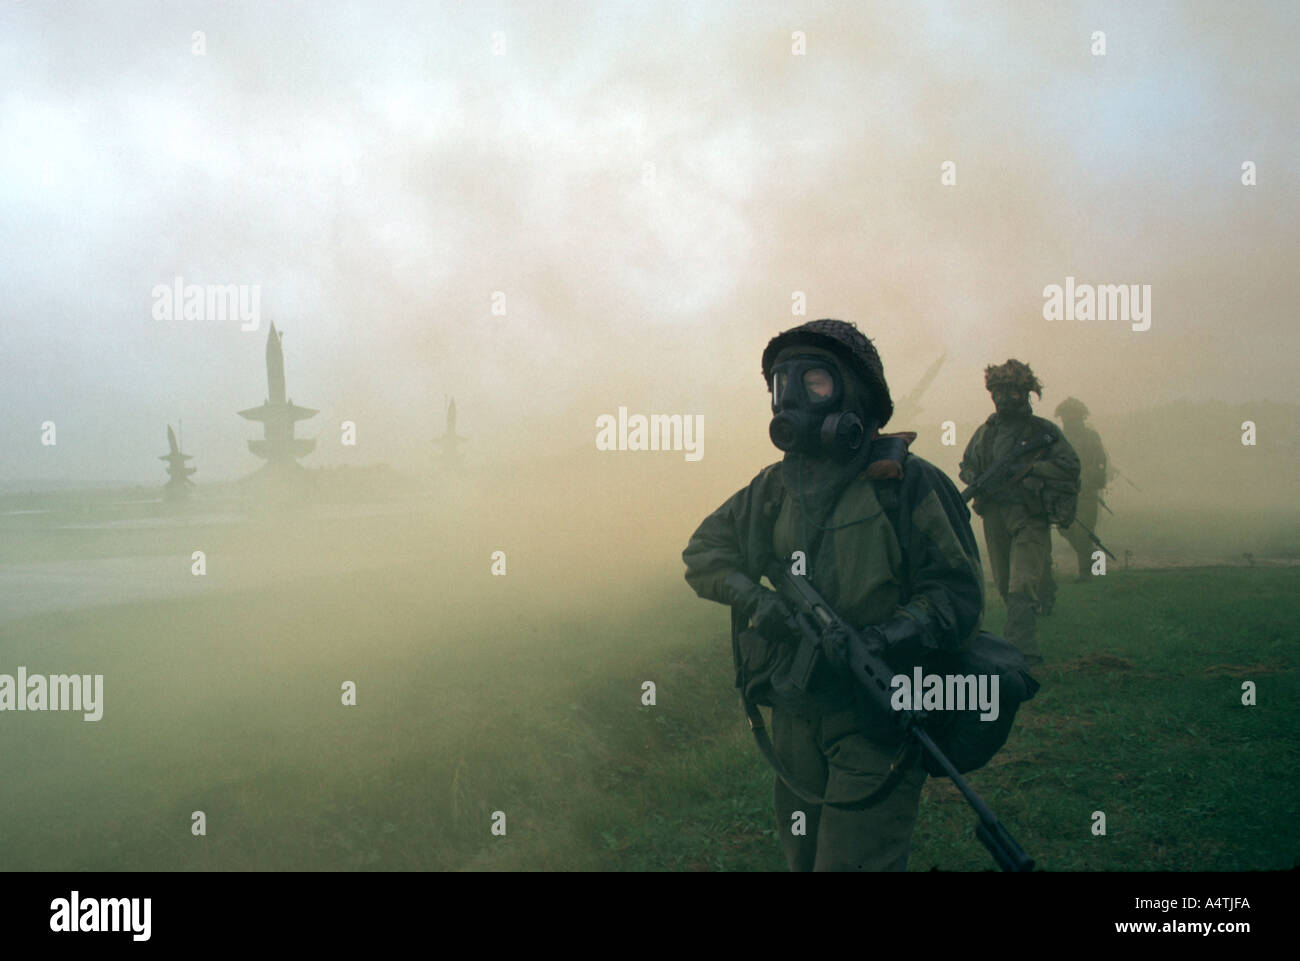 RAF Regiment soldiers - Stock Image